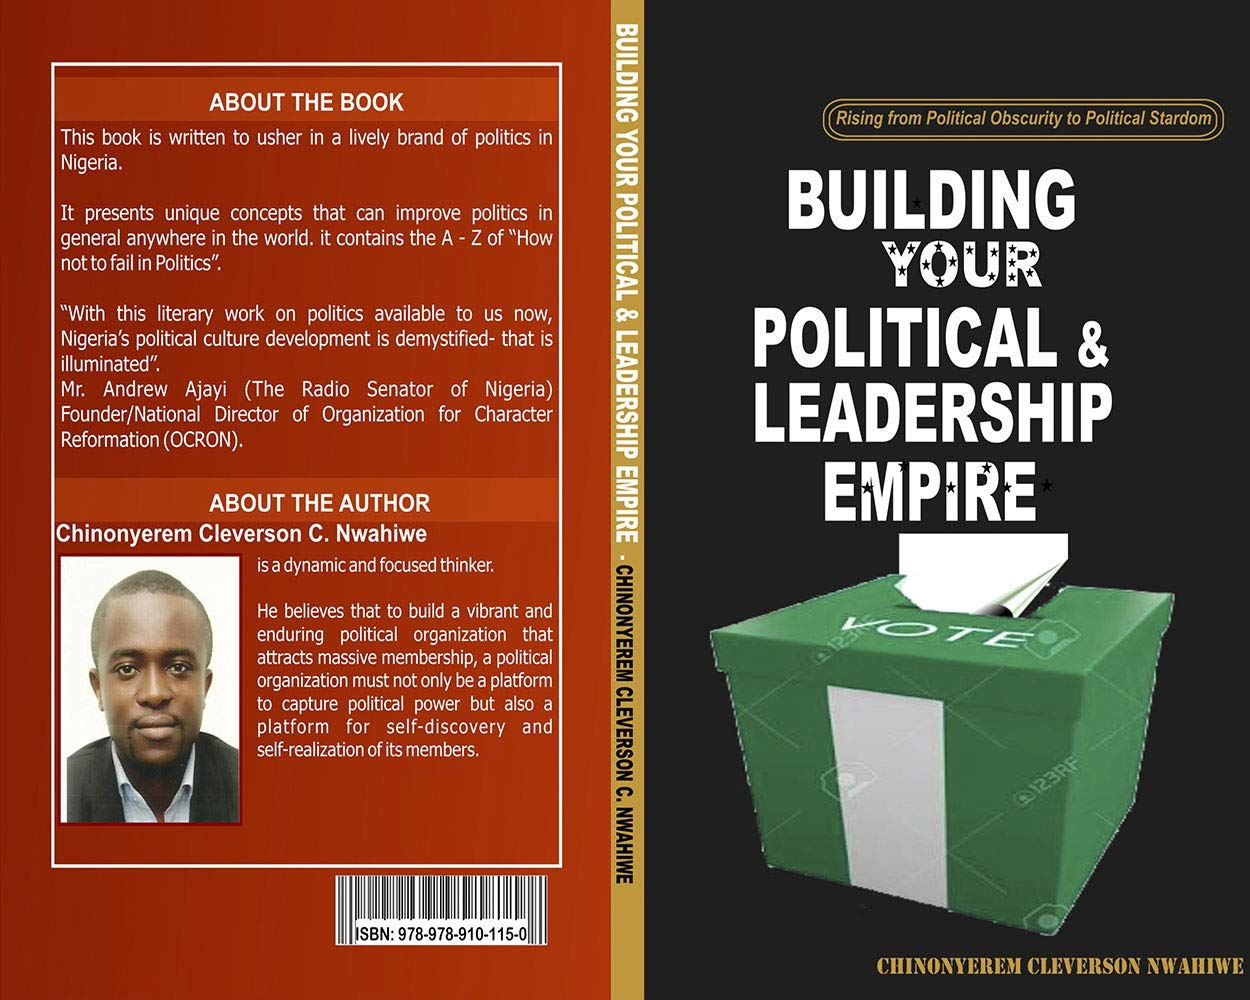 Building your political & Leadership Empire: Rising from Political Obscurity to Political Stardorm